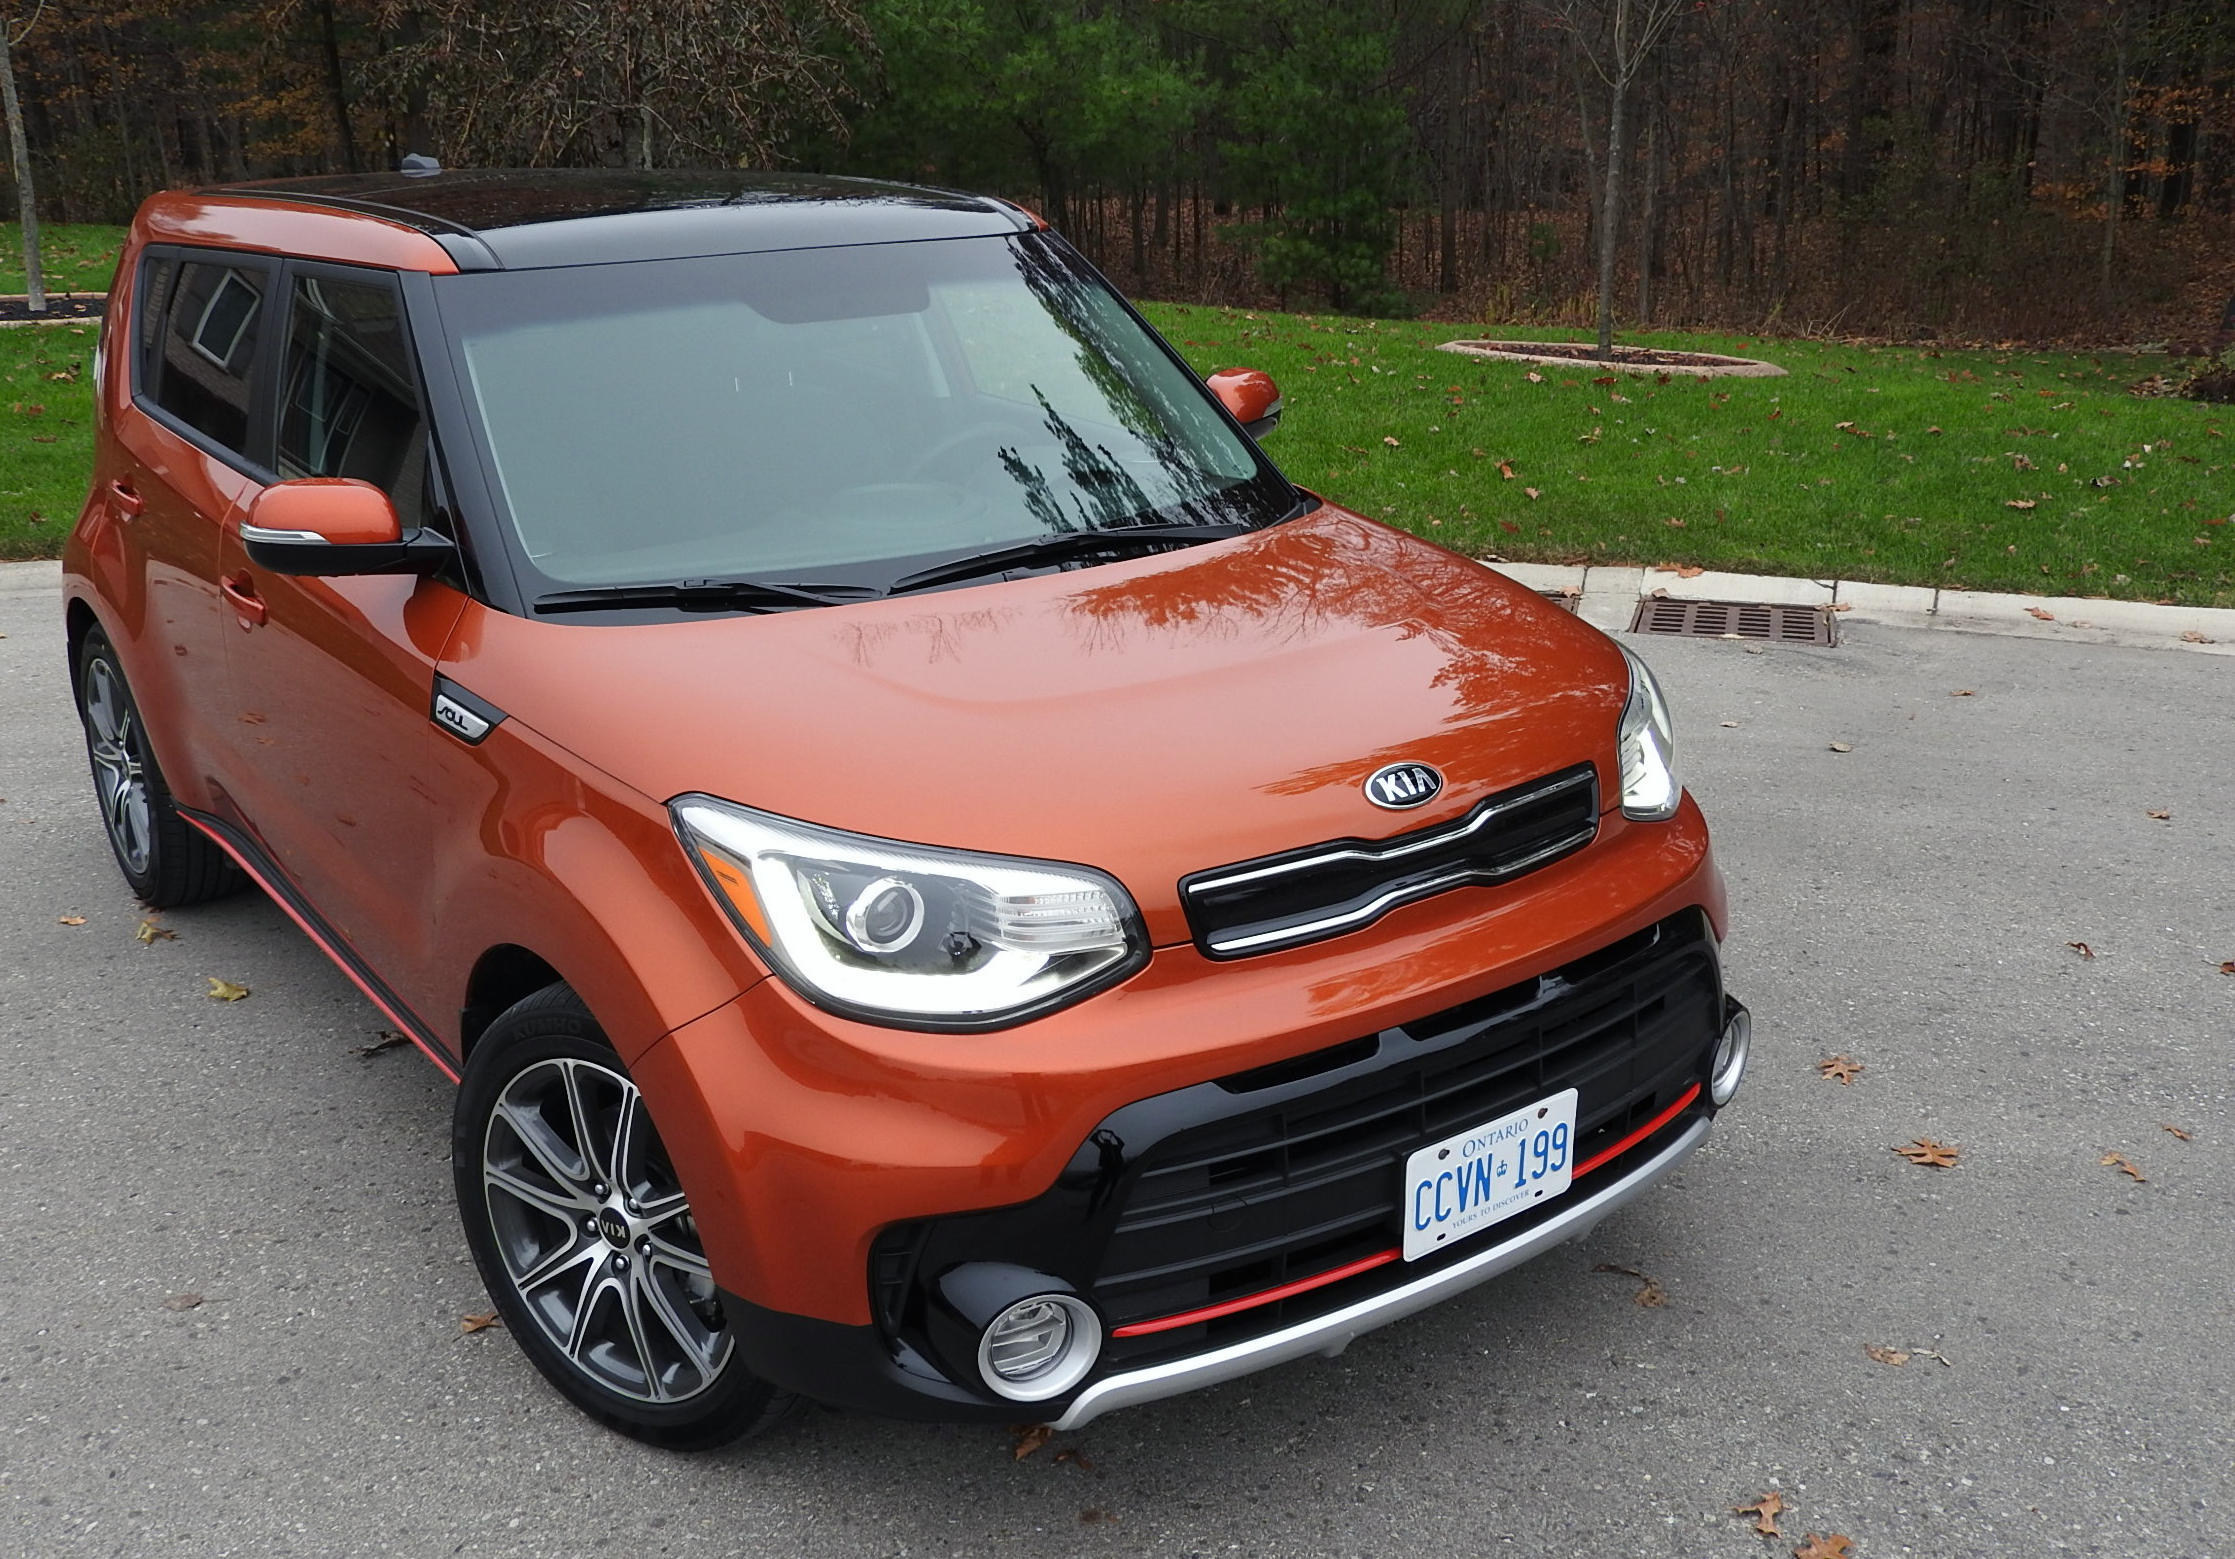 Turbo Pumps Some Sizzle into Funky Kia Soul – WHEELS.ca